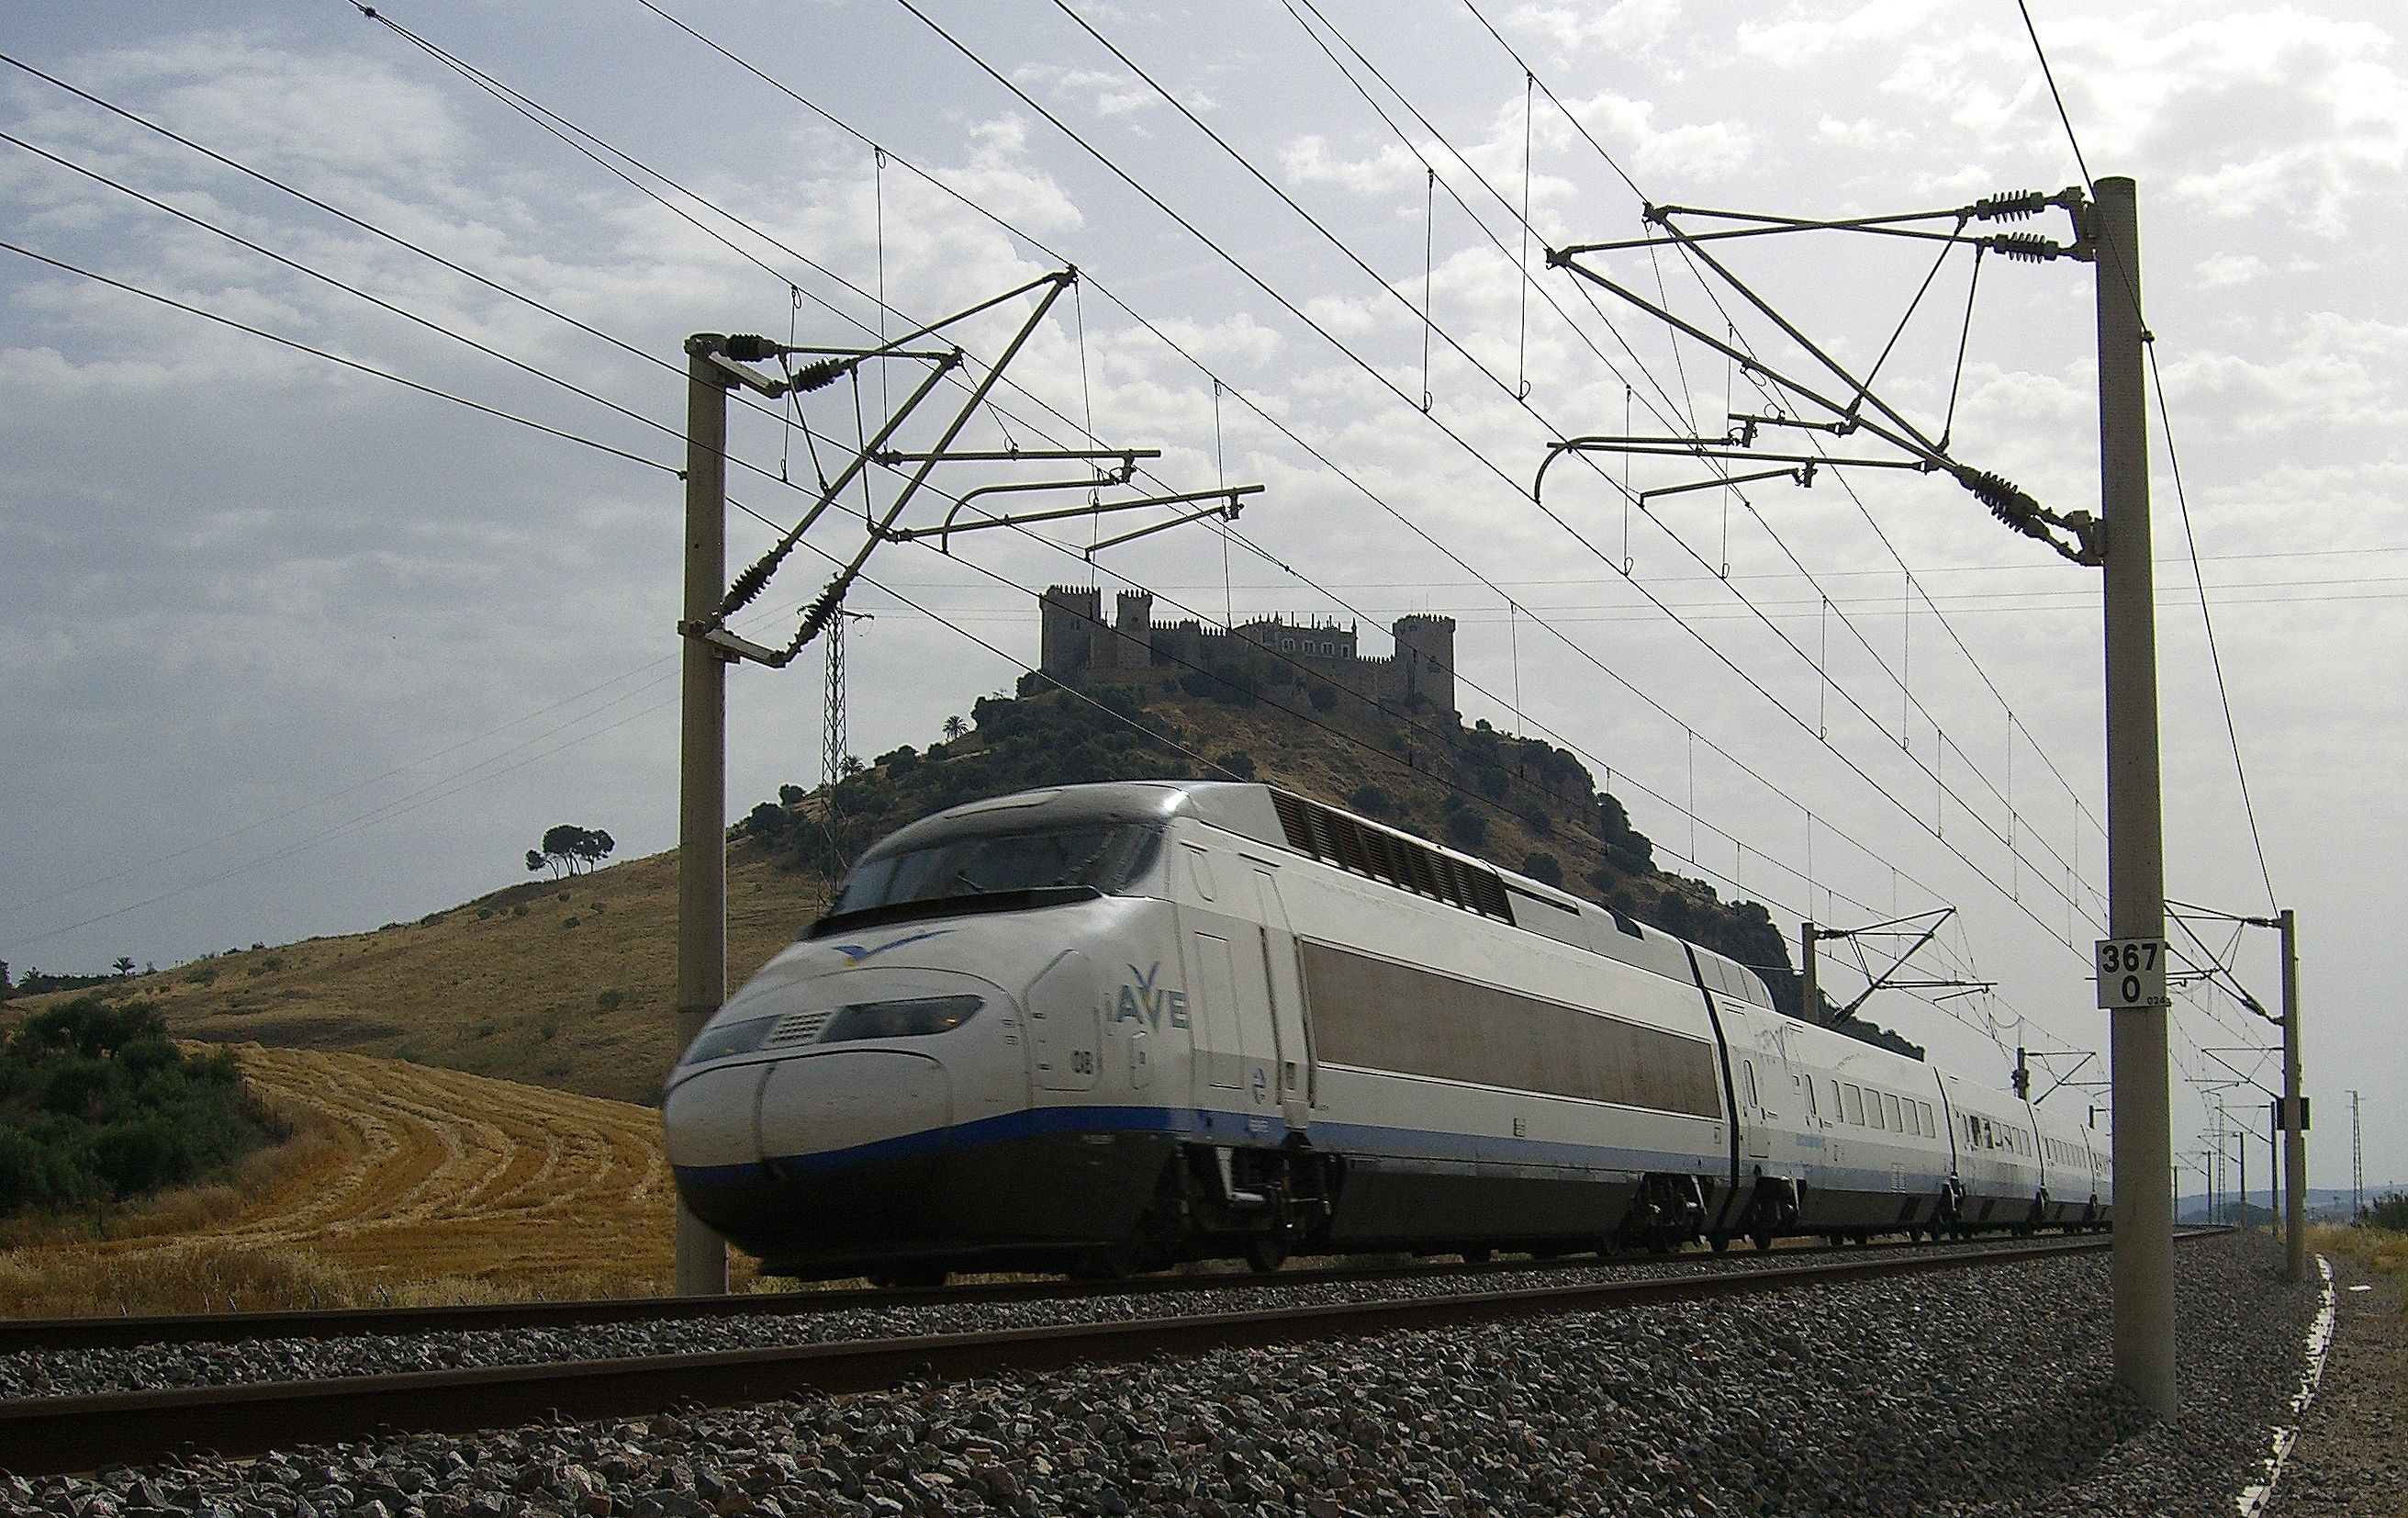 http://upload.wikimedia.org/wikipedia/commons/7/70/AVE_serie_100_de_RENFE.JPG